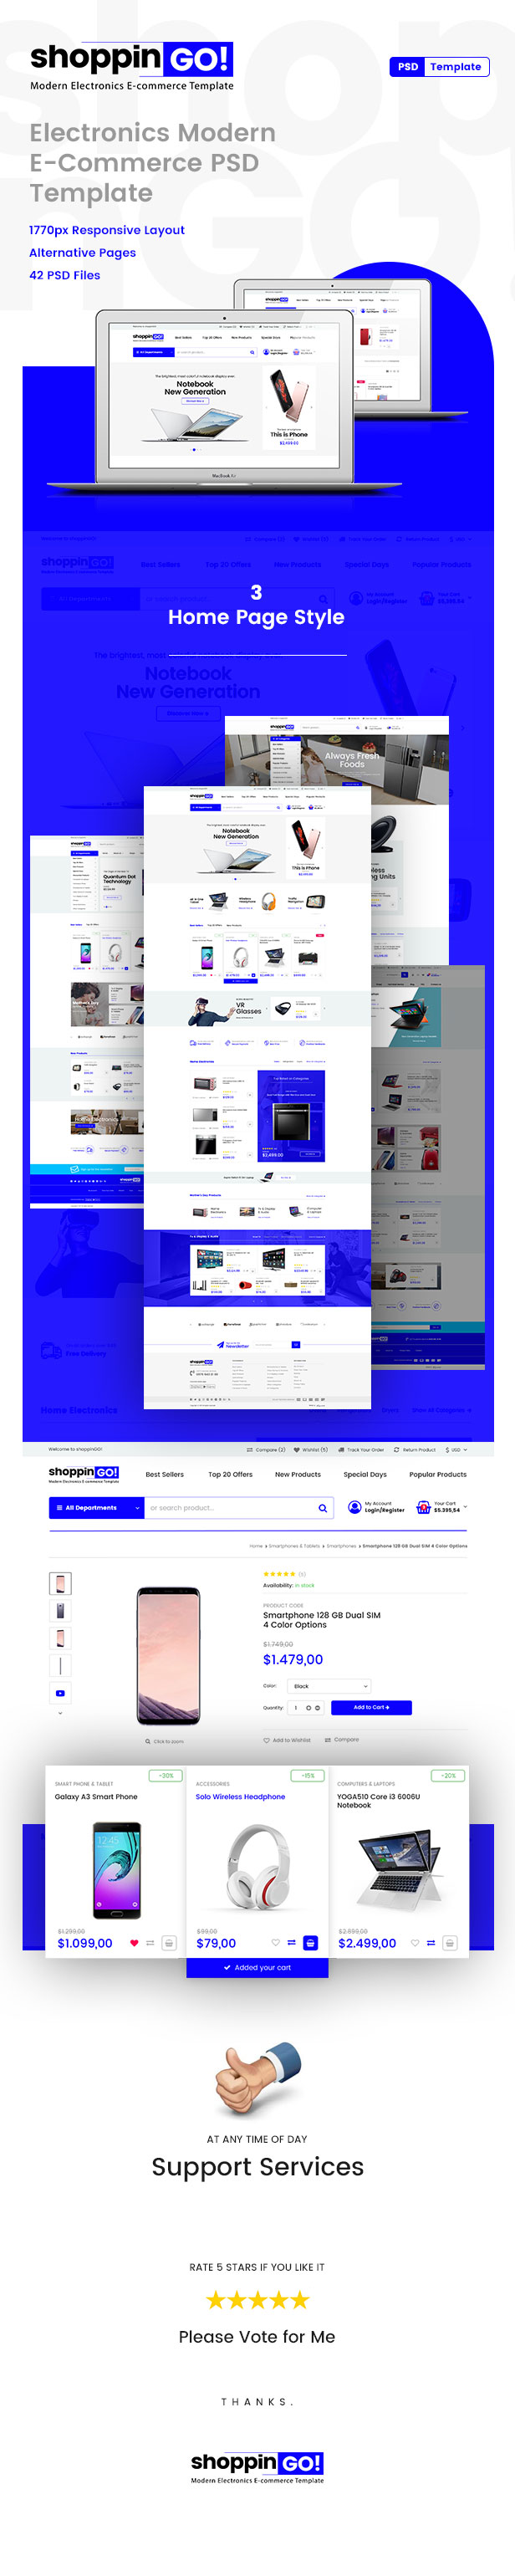 shoppinGO! - Electronics Modern E-Commerce PSD Template